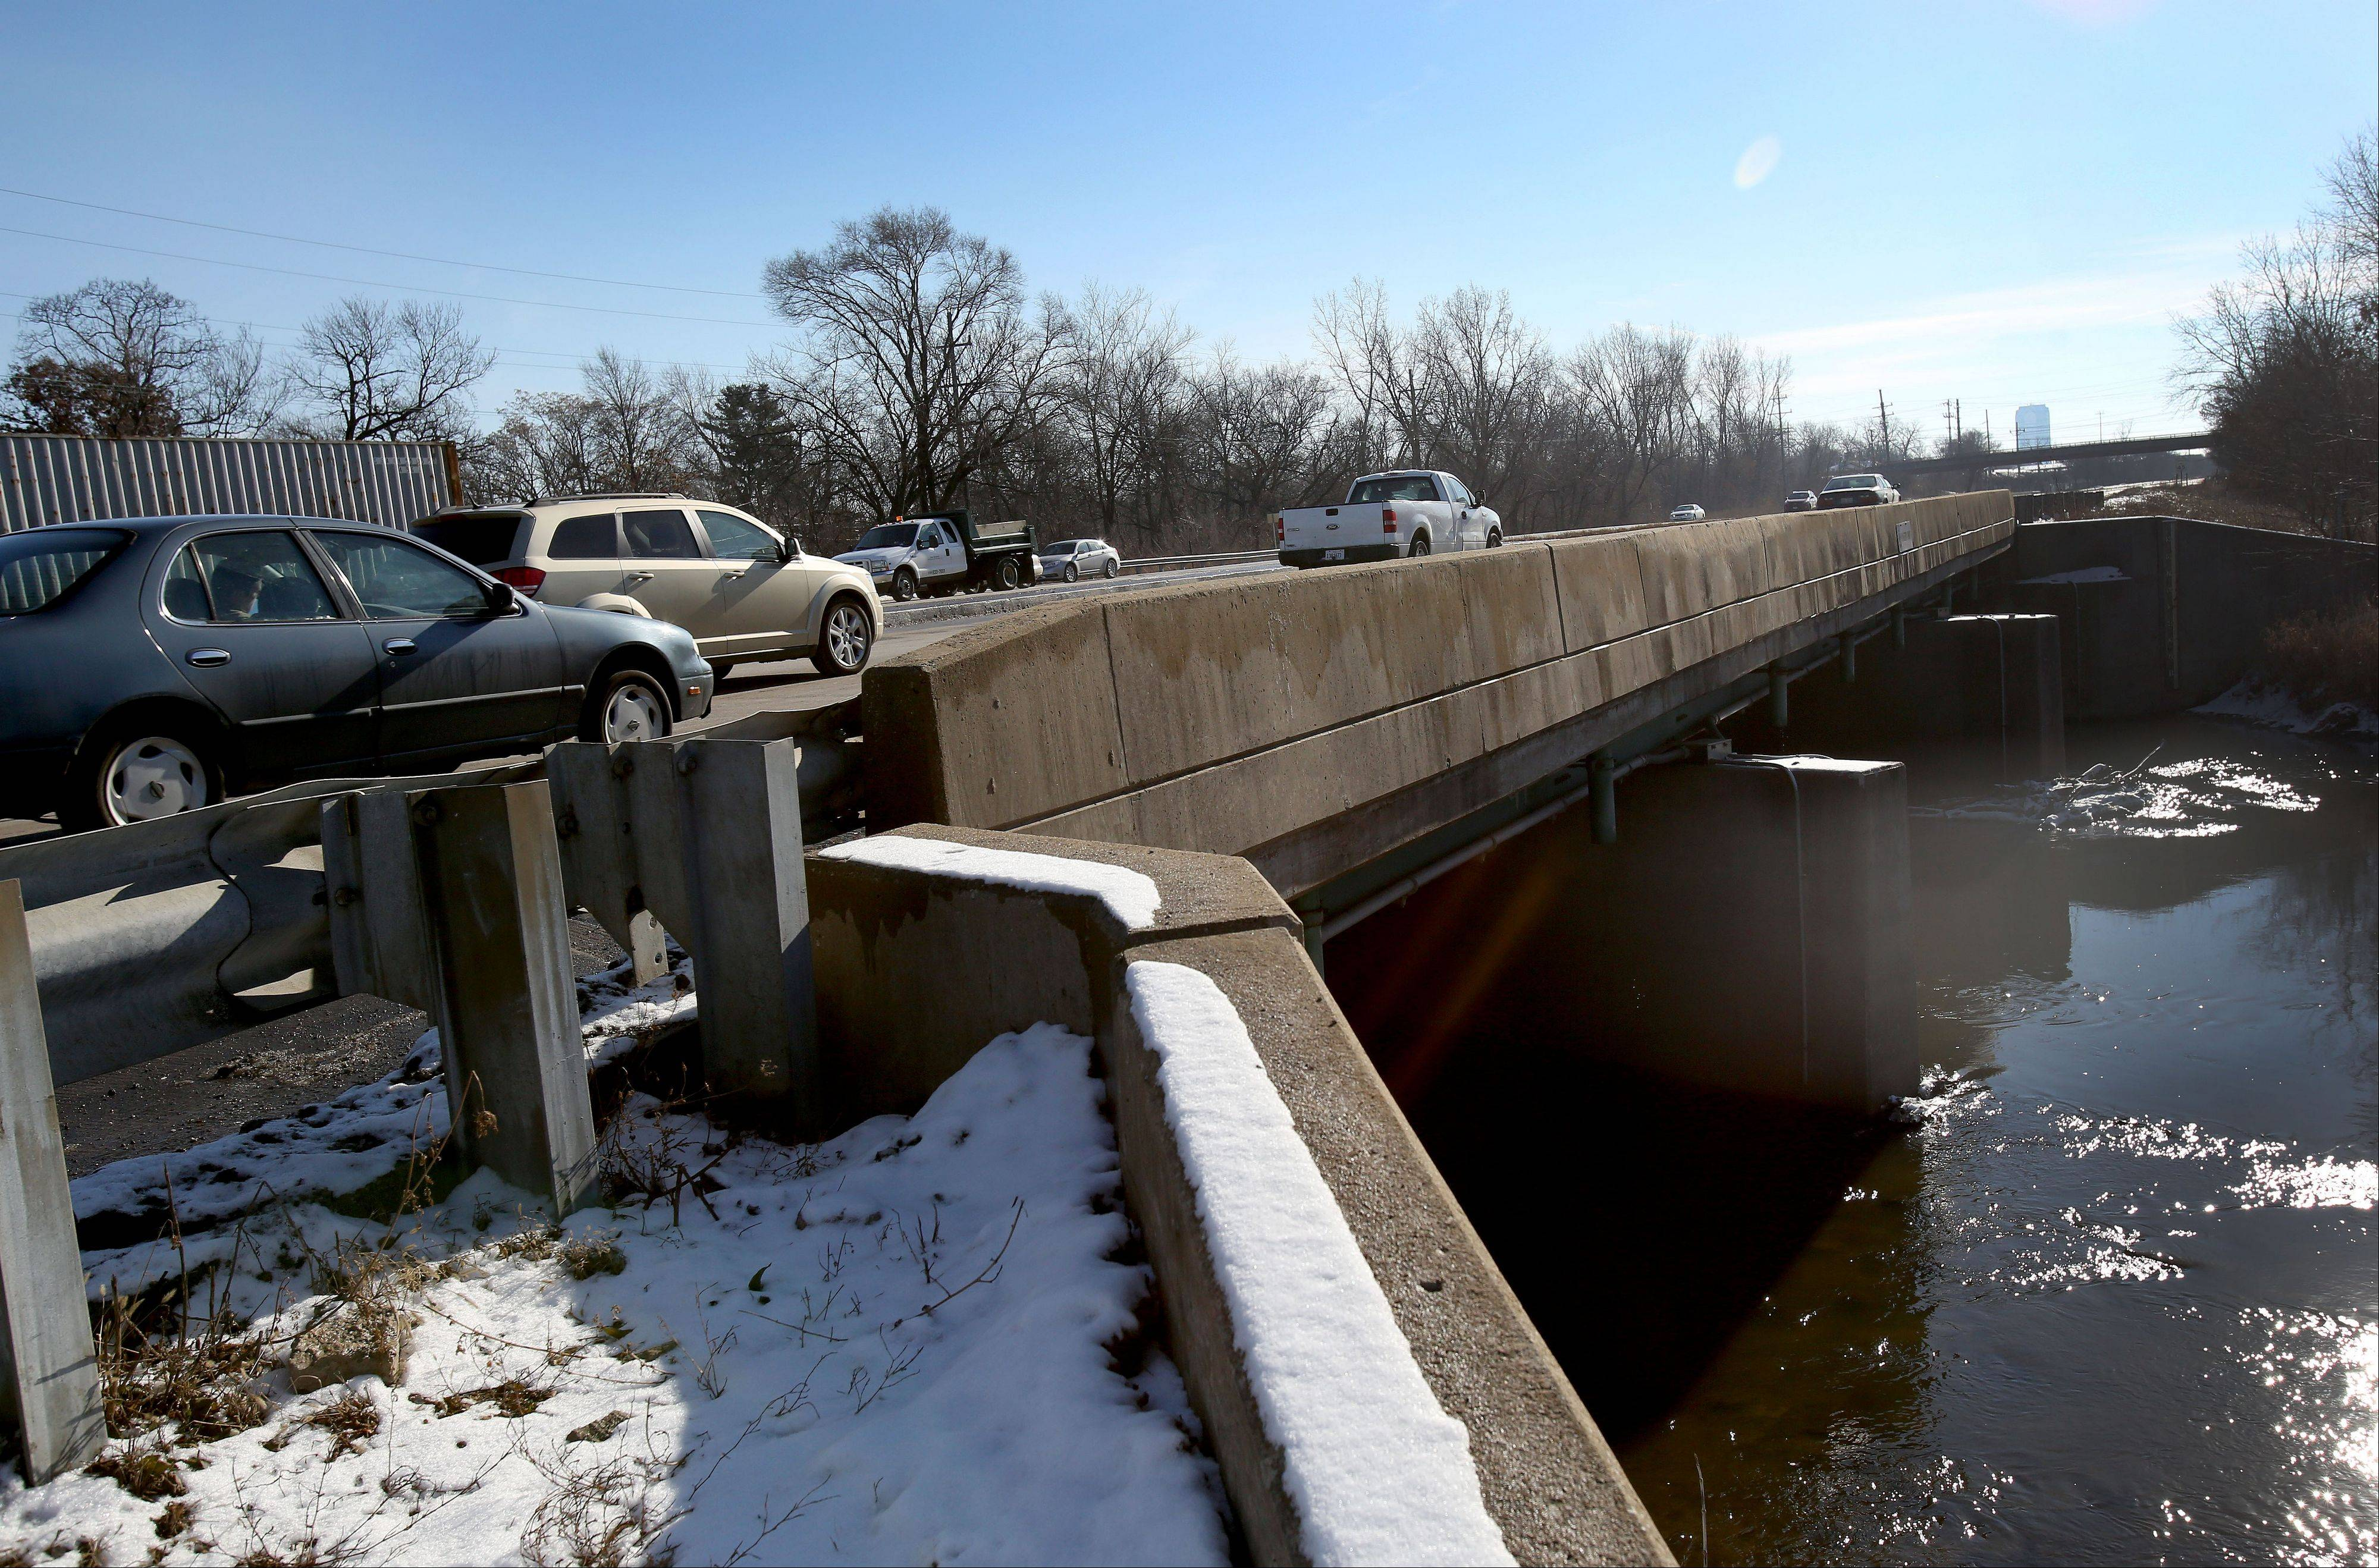 Repairs to the bridge that carries Route 83 over Salt Creek in Villa Park is one of the two area bridge projects state officials announced this week. The other project is in Aurora.